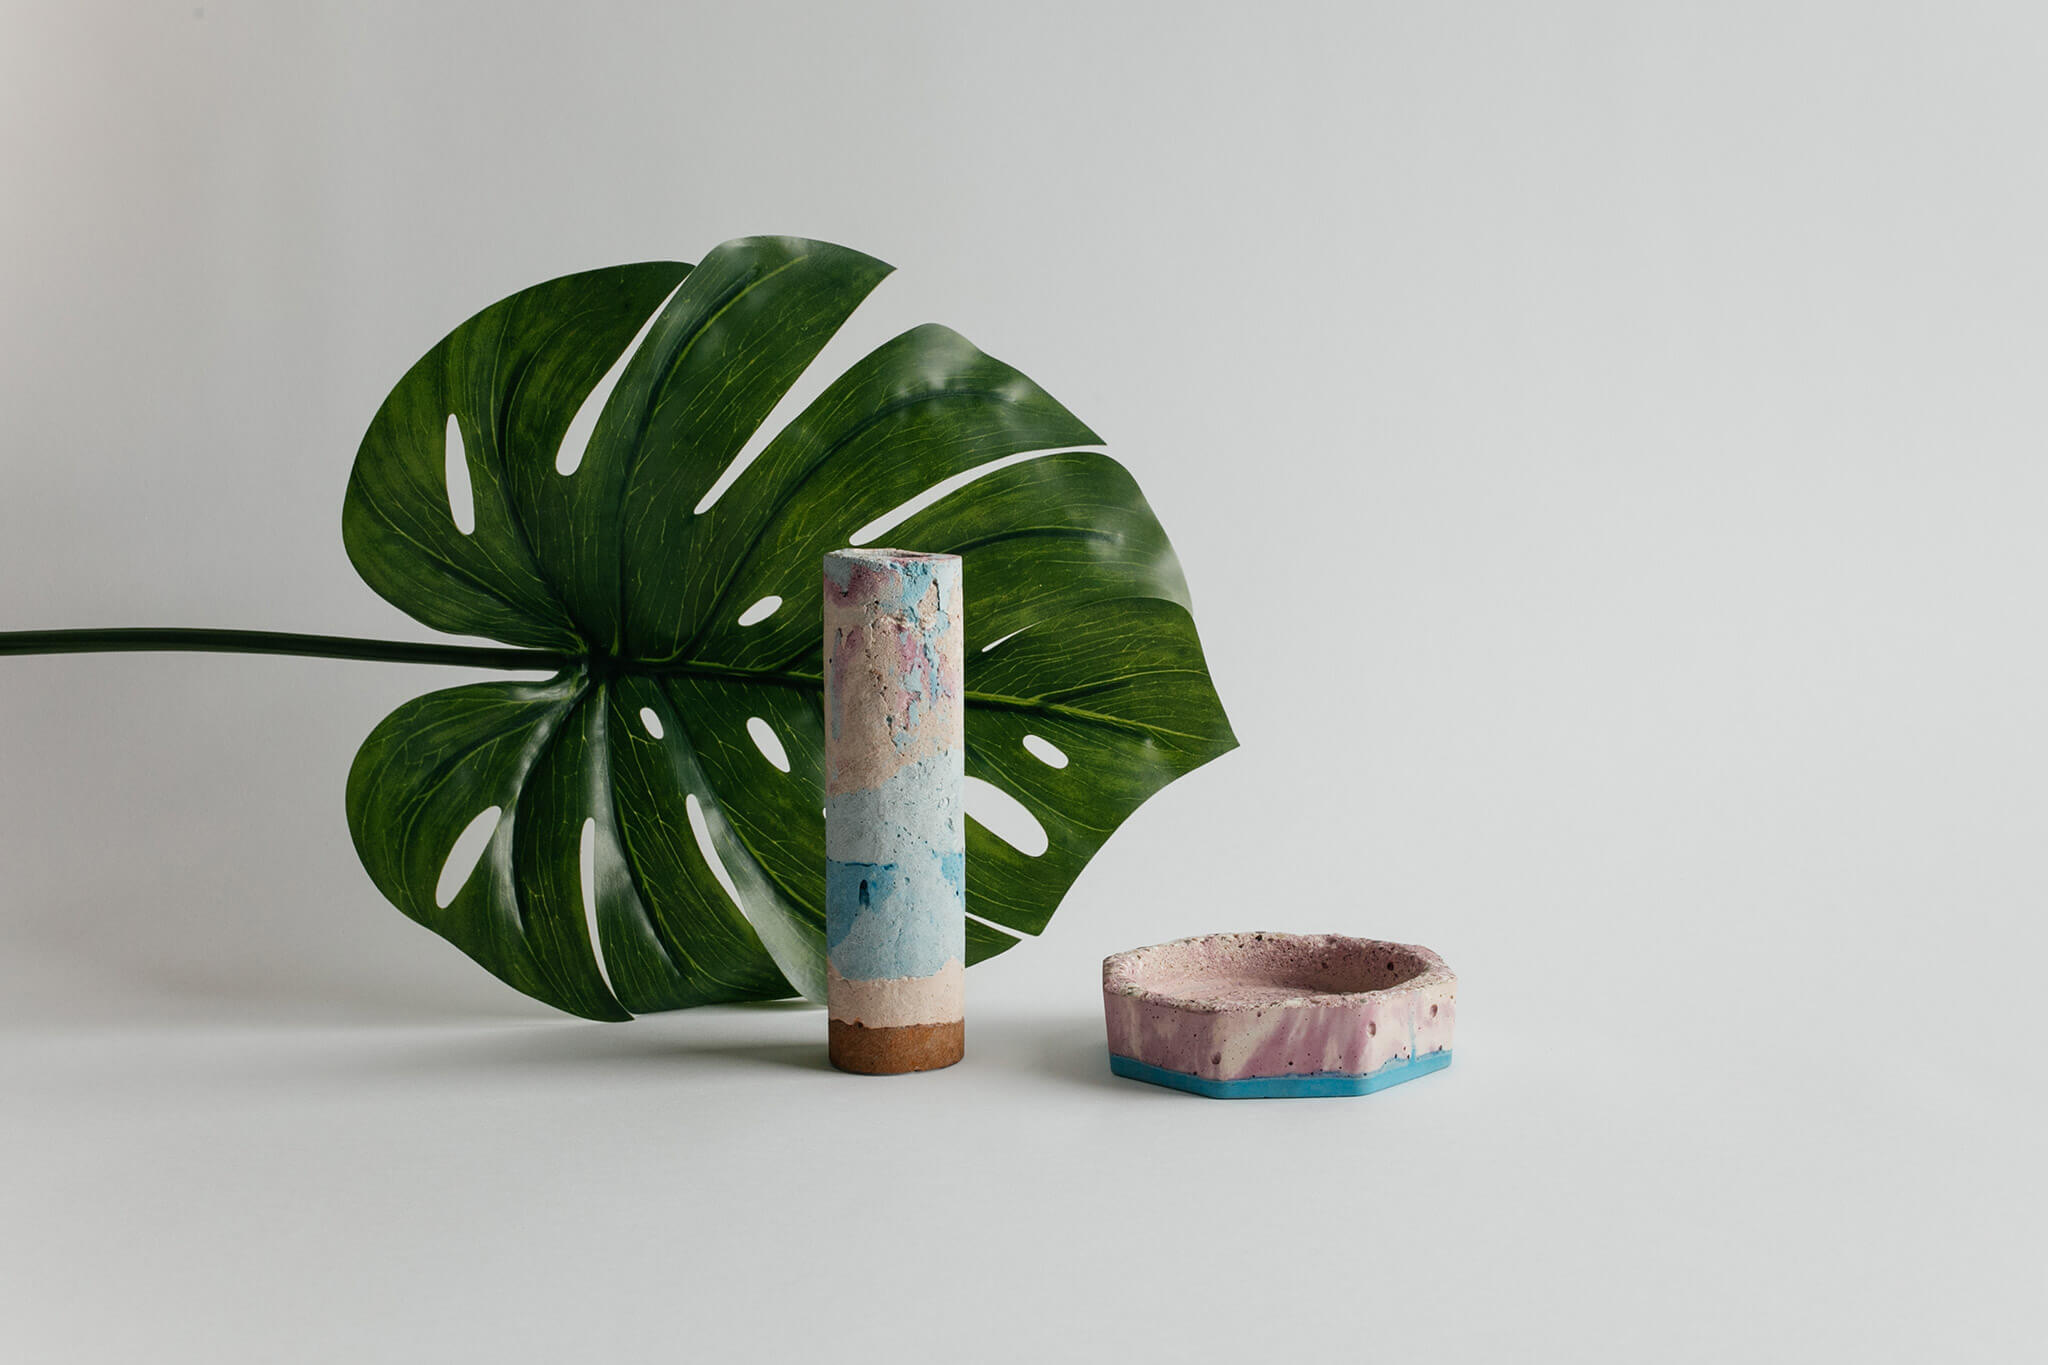 Emma McDowall - Concrete Vase and Concrete Coin Dish